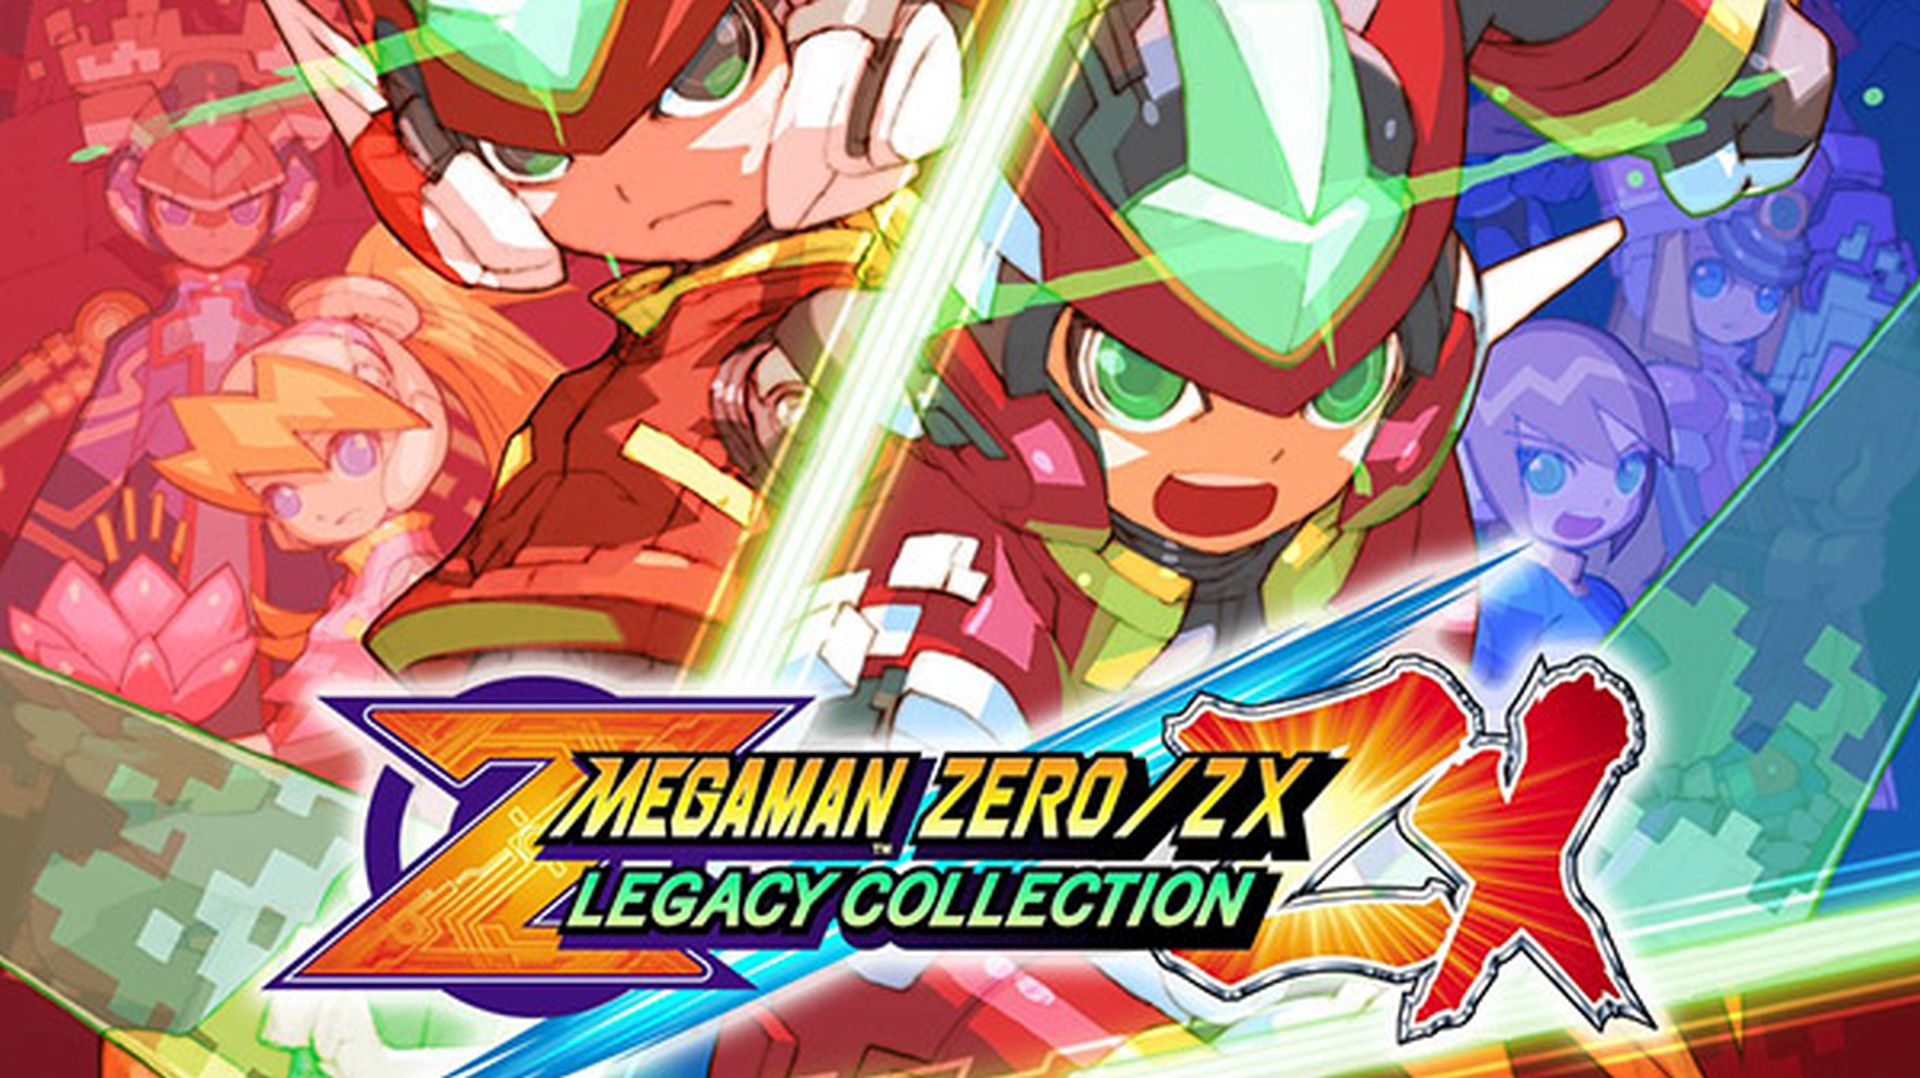 Megaman Zero-ZX Legacy Collection